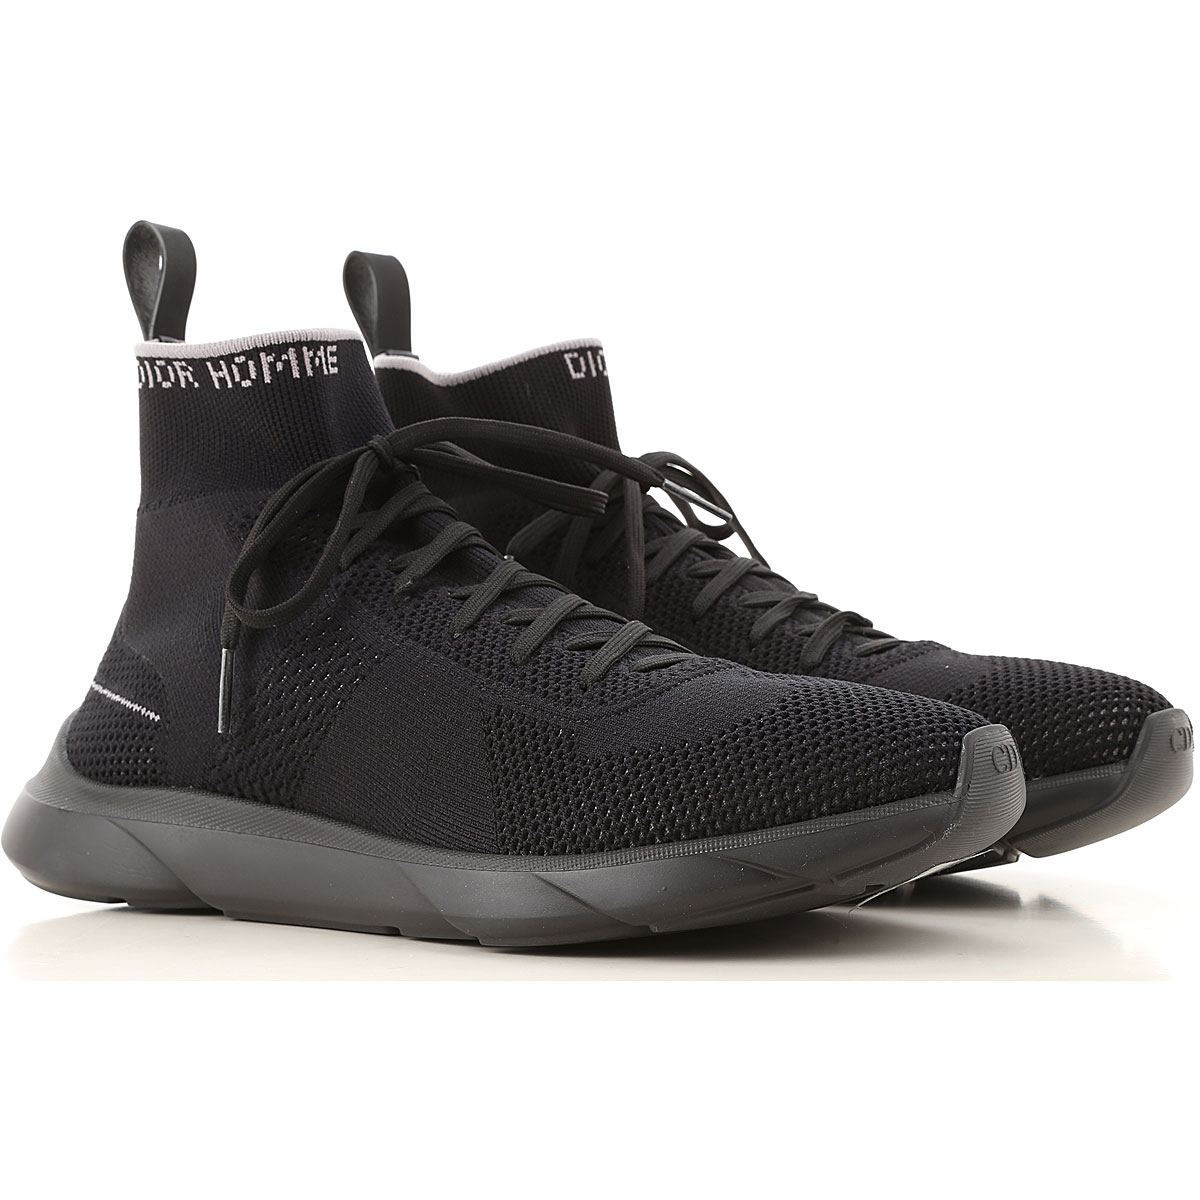 Christian Dior Sneakers for Men On Sale, Black, Knitted, 2019, 10.5 7.5